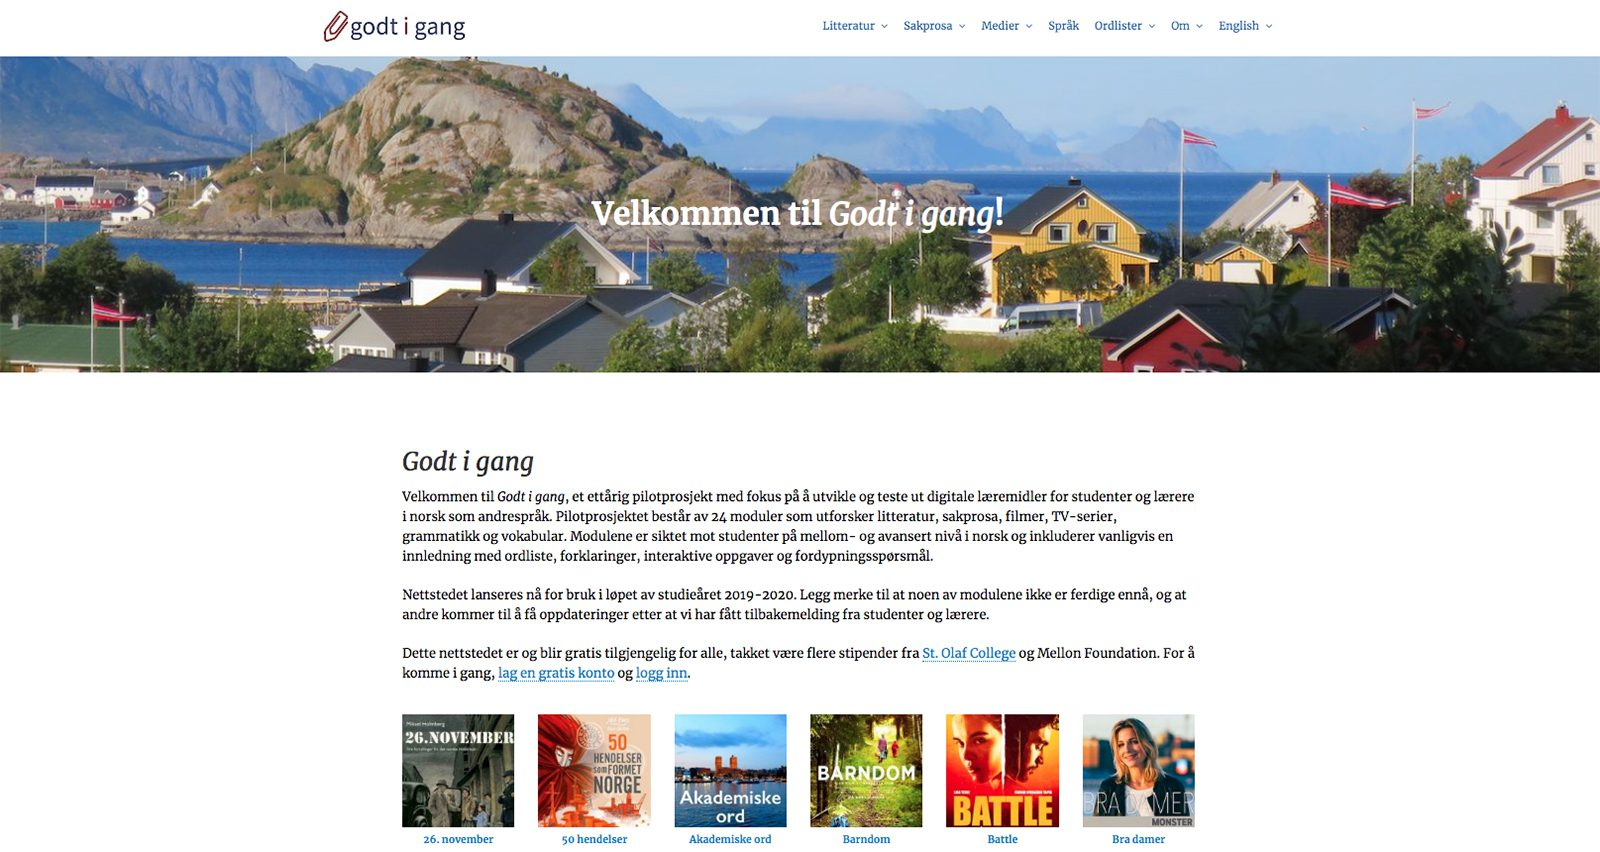 A screenshot of the Godt i gang site